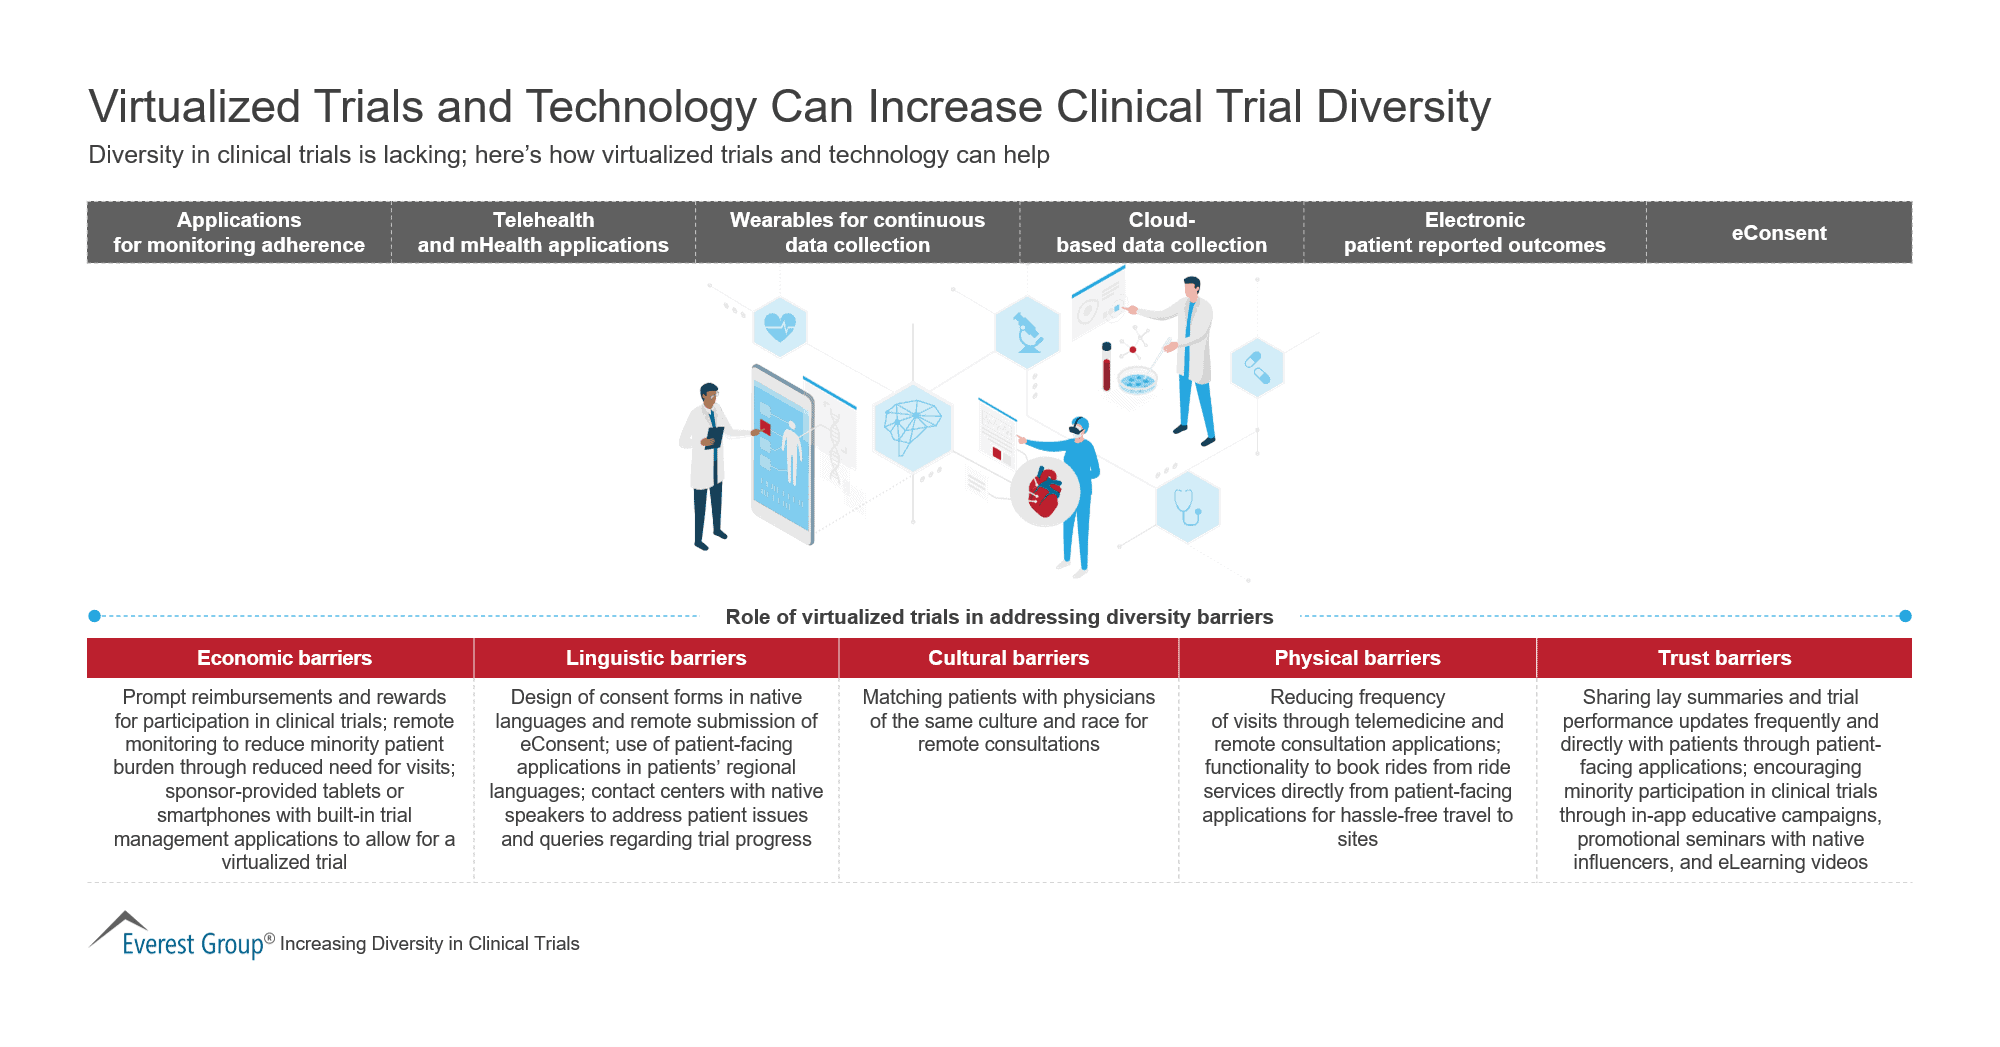 Virtualized Trials and Technology Can Increase Clinical Trial Diversity